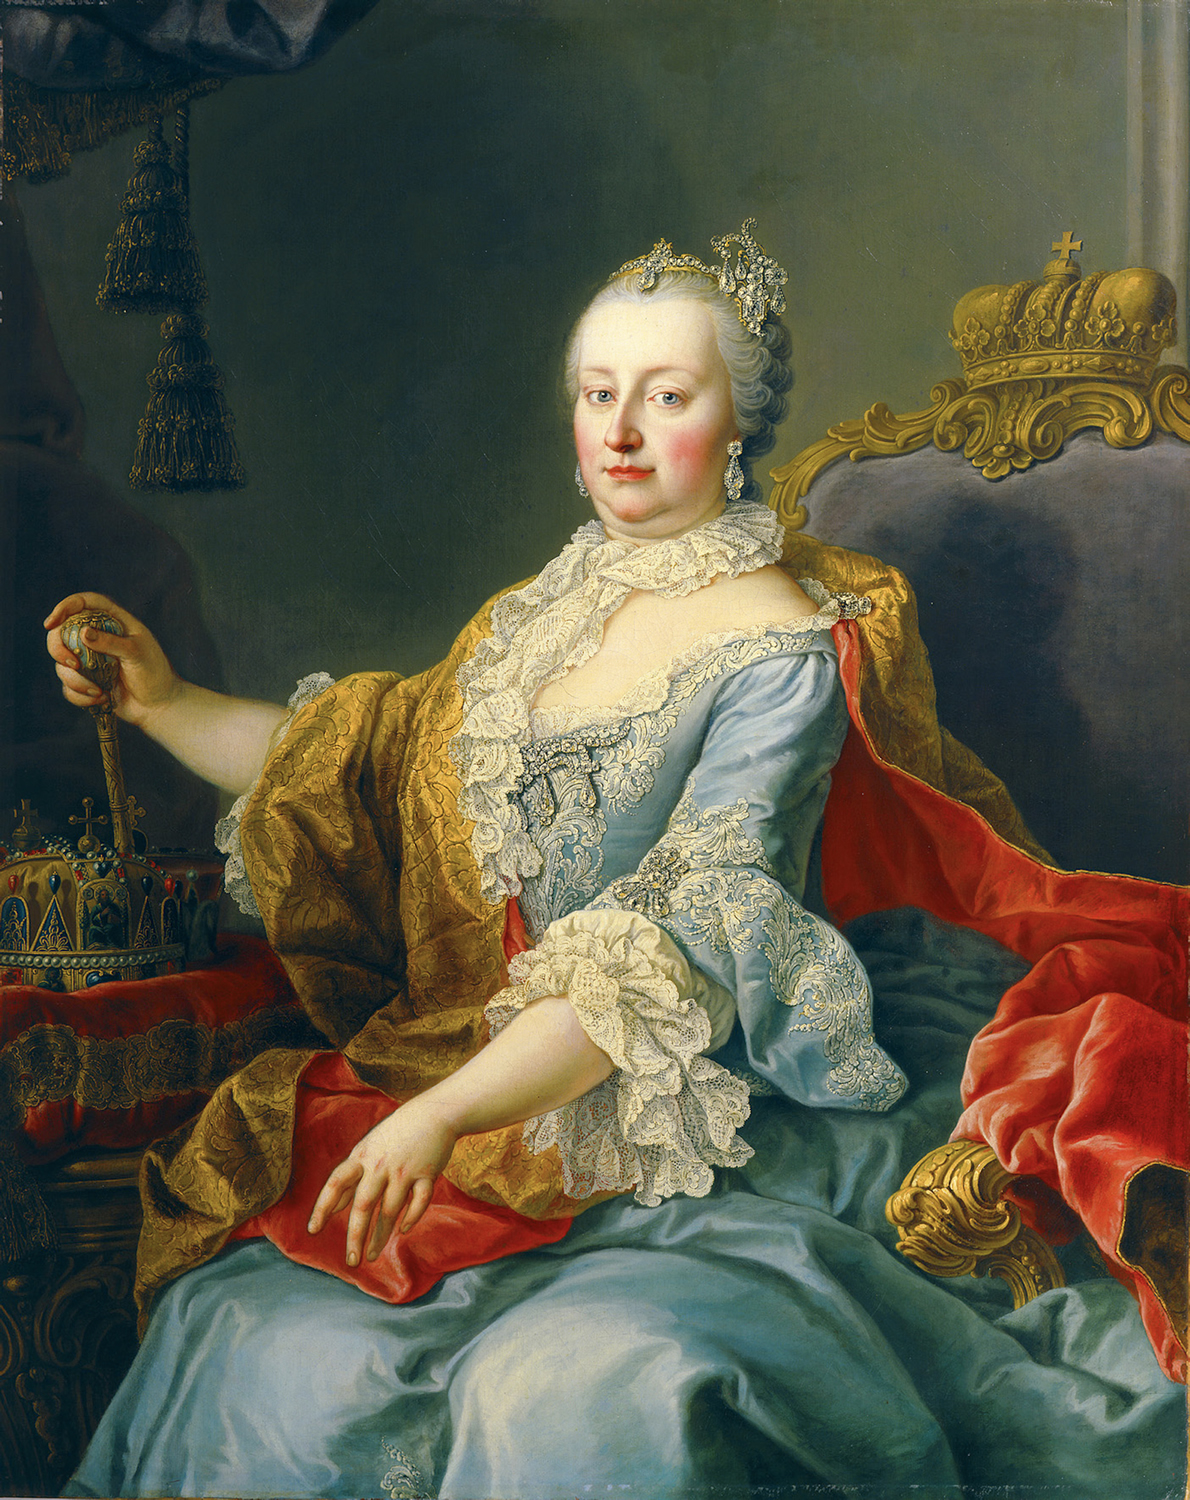 File:Maria Theresia14.jpg